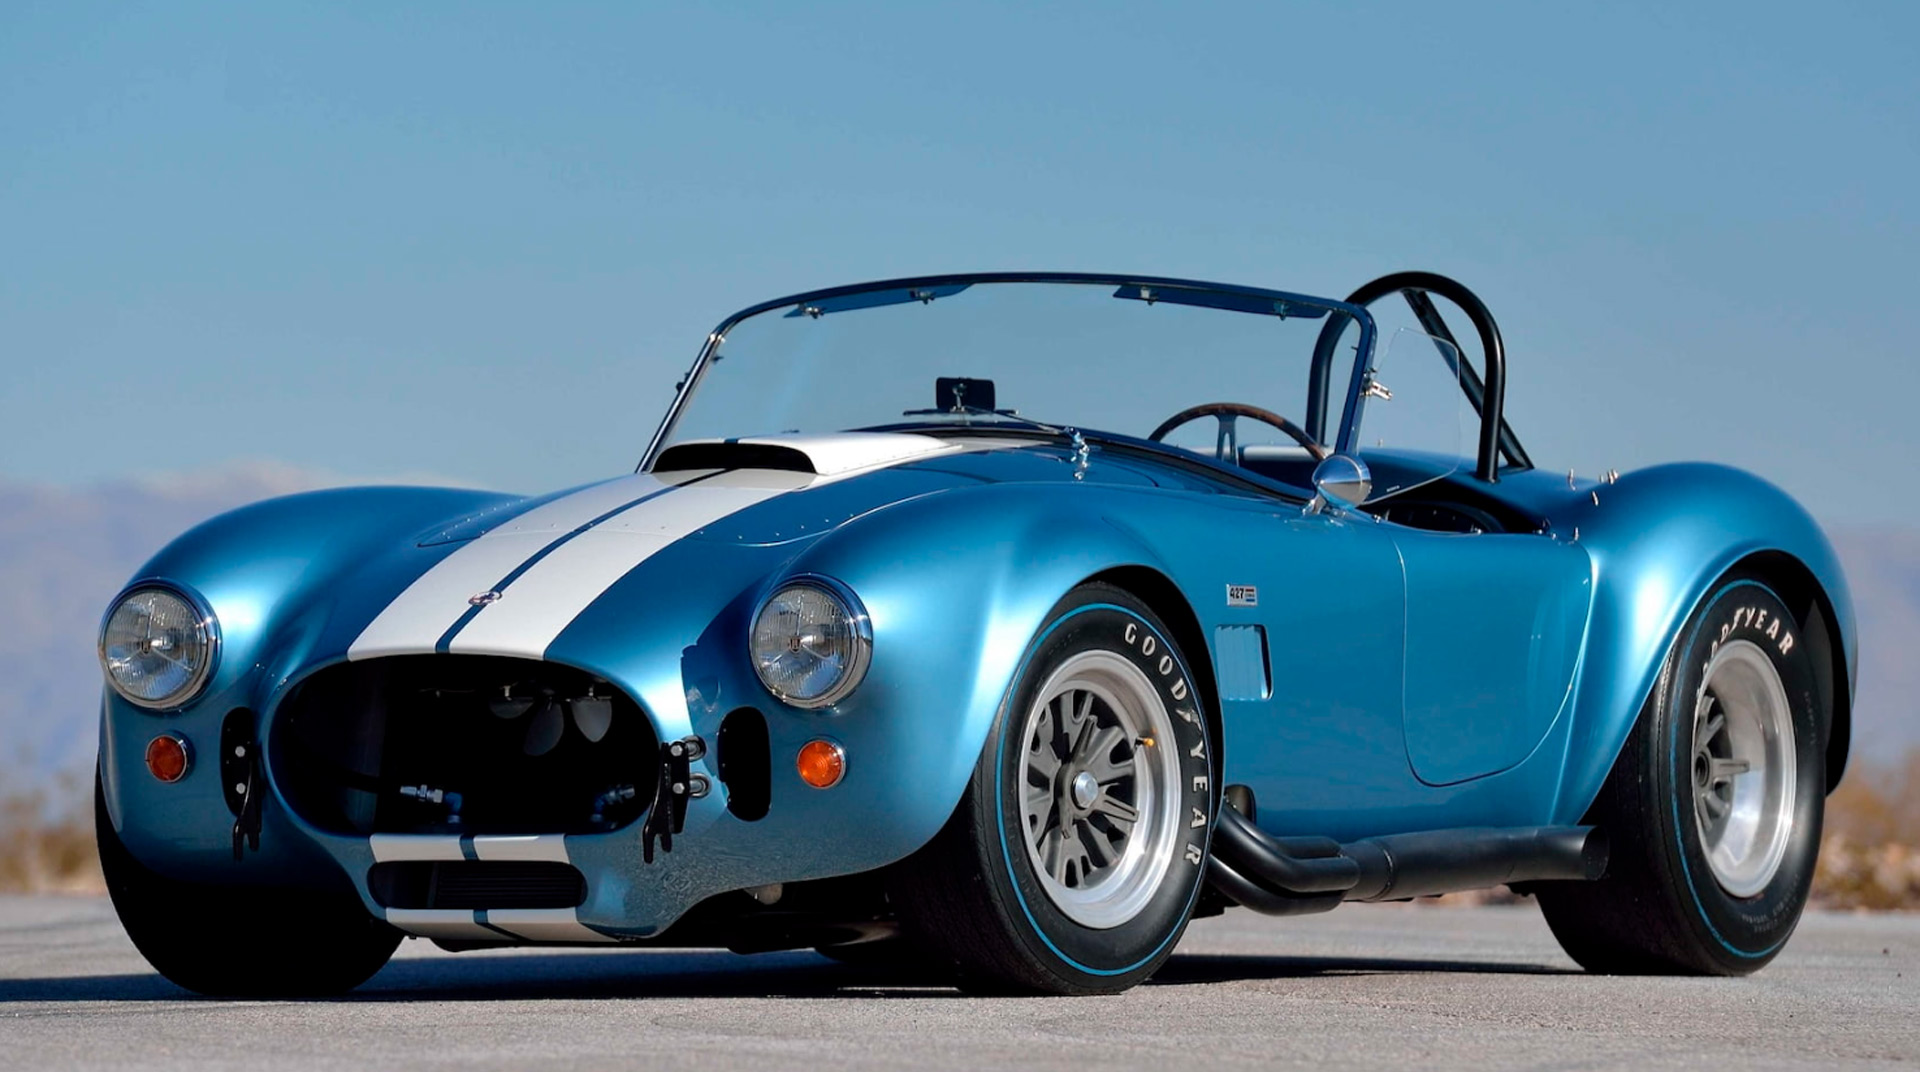 old-school muscle cars:1965-1967 Shelby Cobra 427 S/C Roadster